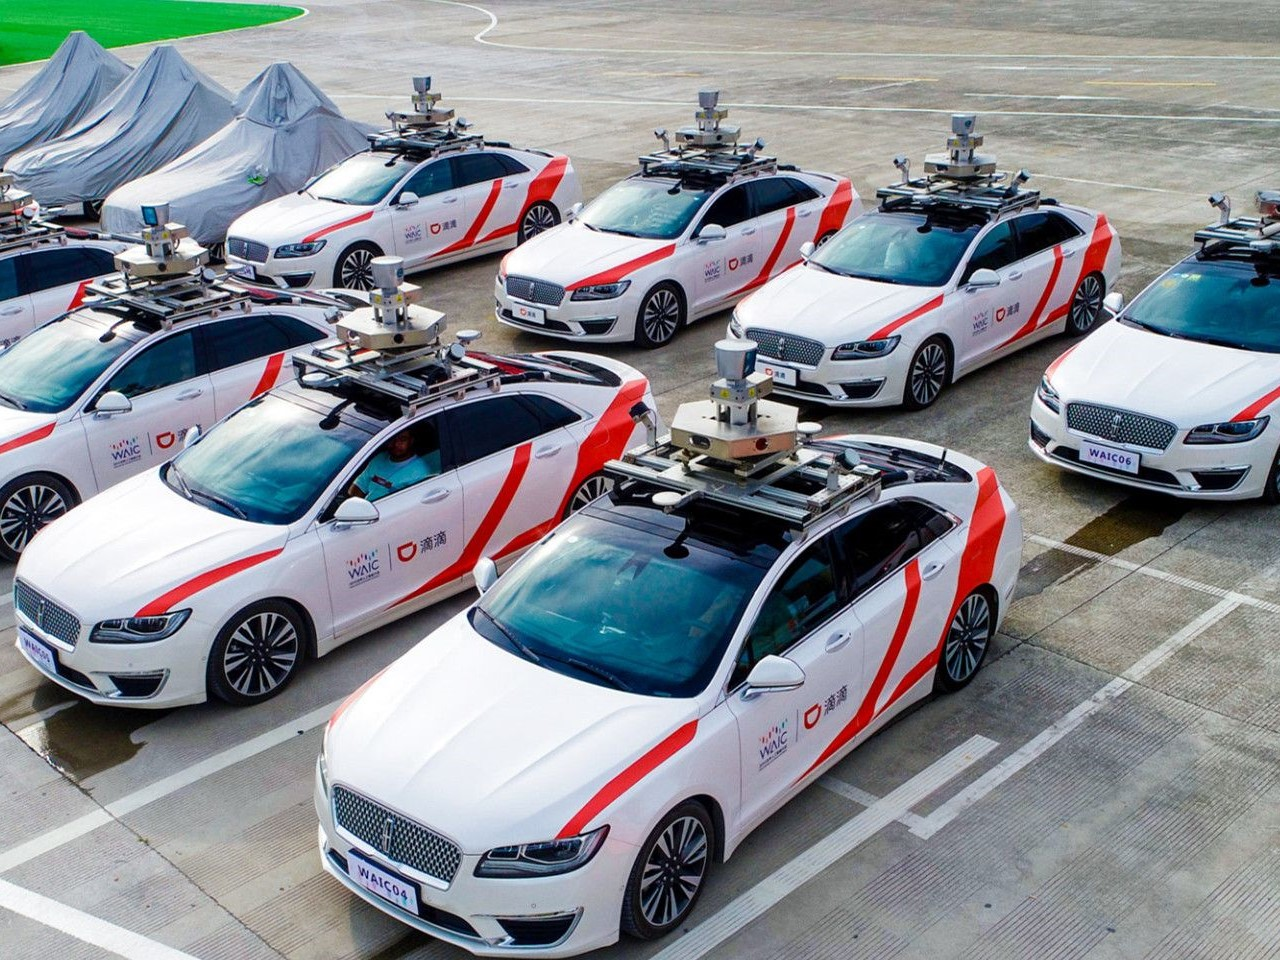 Didi Chuxing's Robotaxis Soon to Deploy in Shanghai